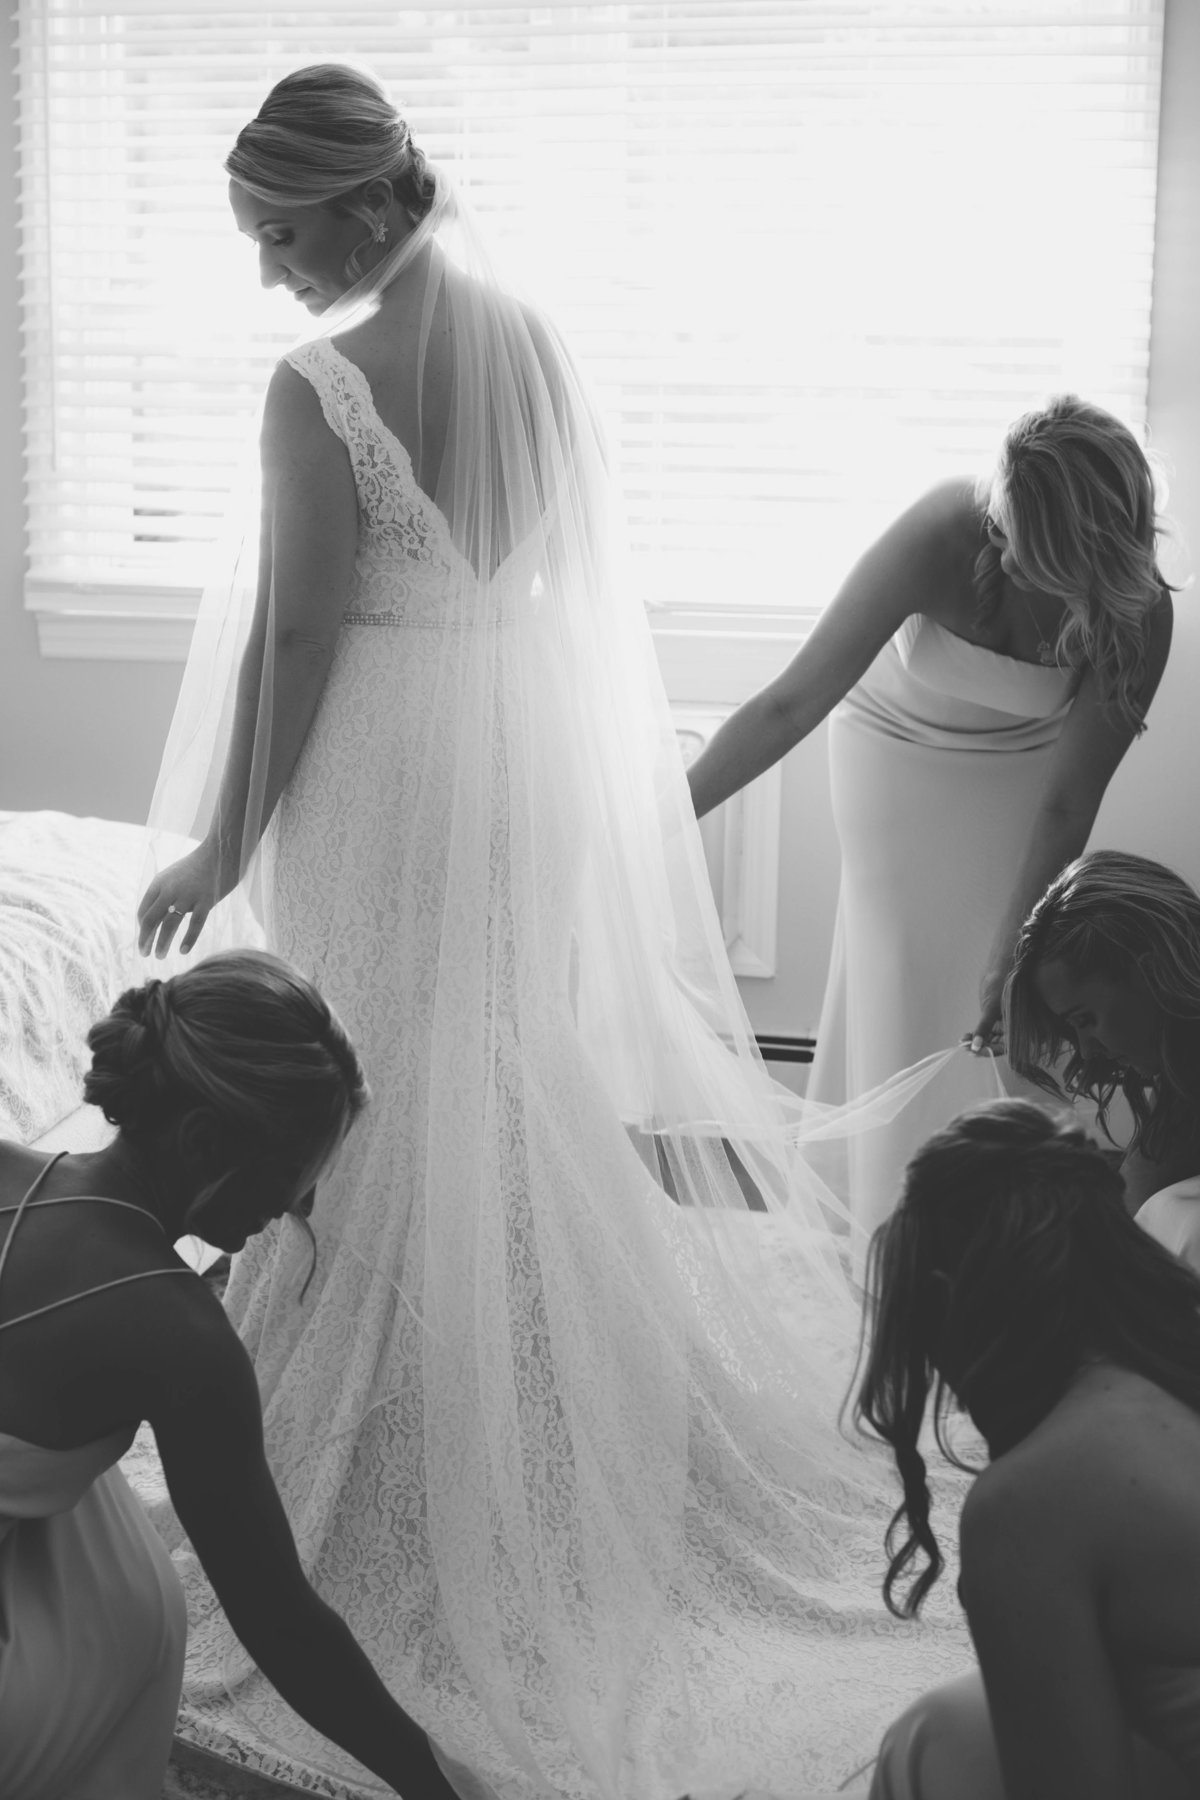 bridesmaid helping bride with dress in black and white photo from wedding at The Mansion at Timber Point